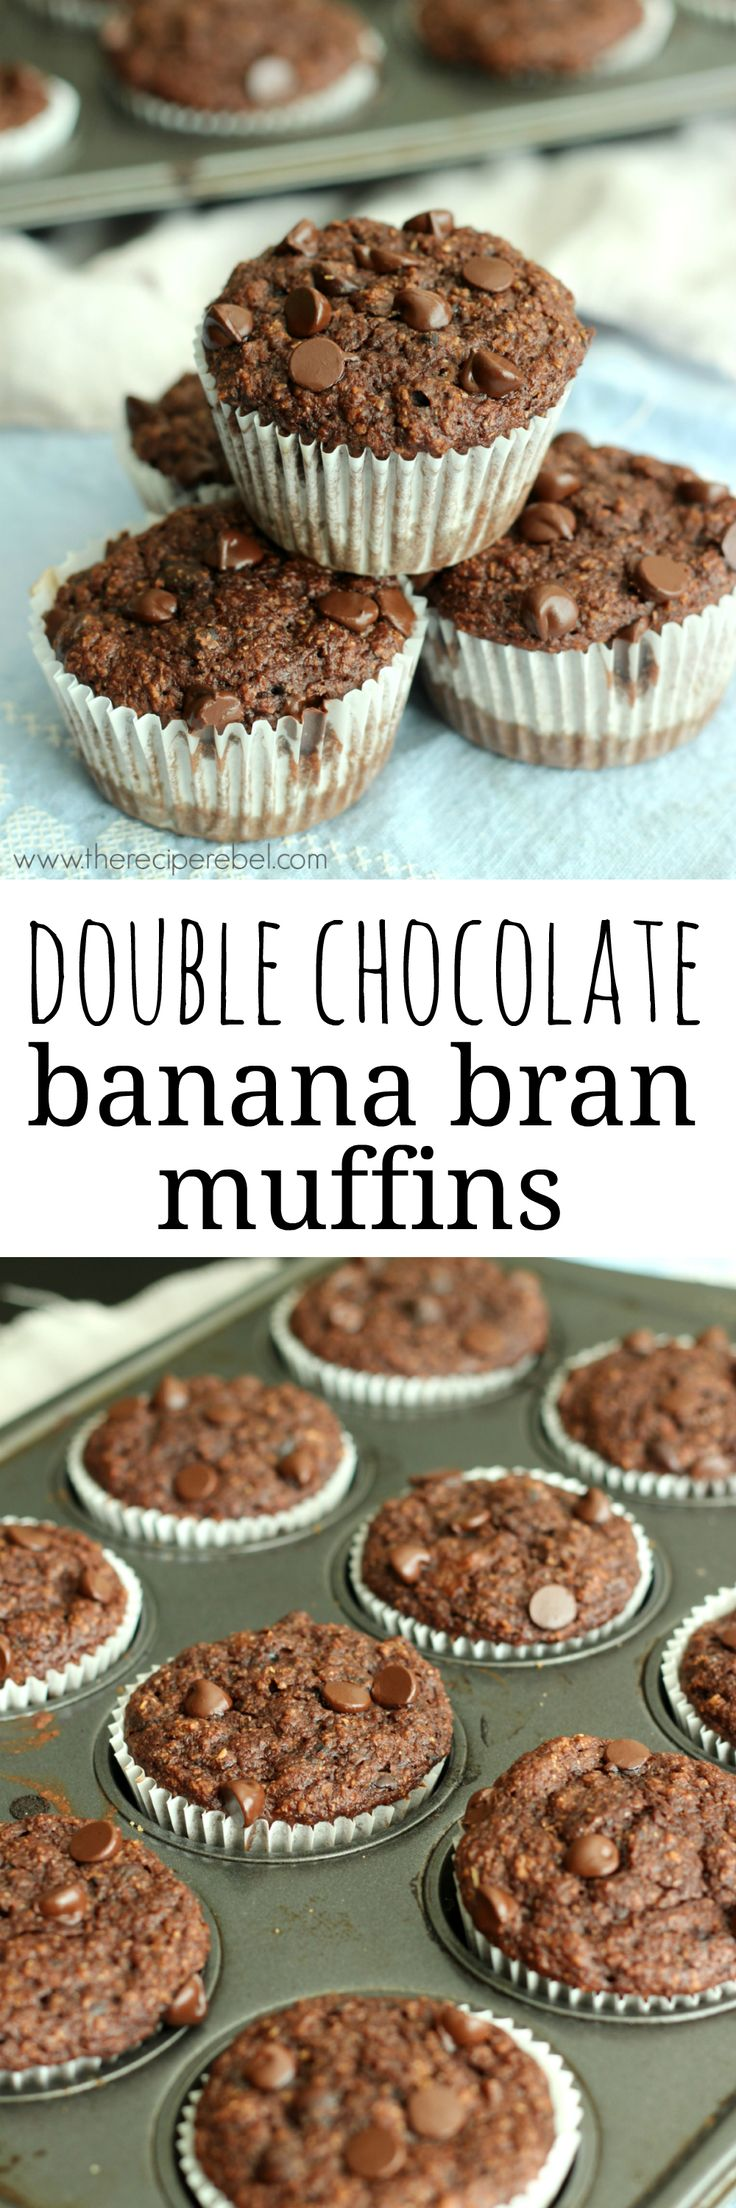 Rich, fudgy bran muffins featuring chocolate and banana -- so good you could eat them for dessert! I promise you can't even taste the bran (Fall Bake Treats)